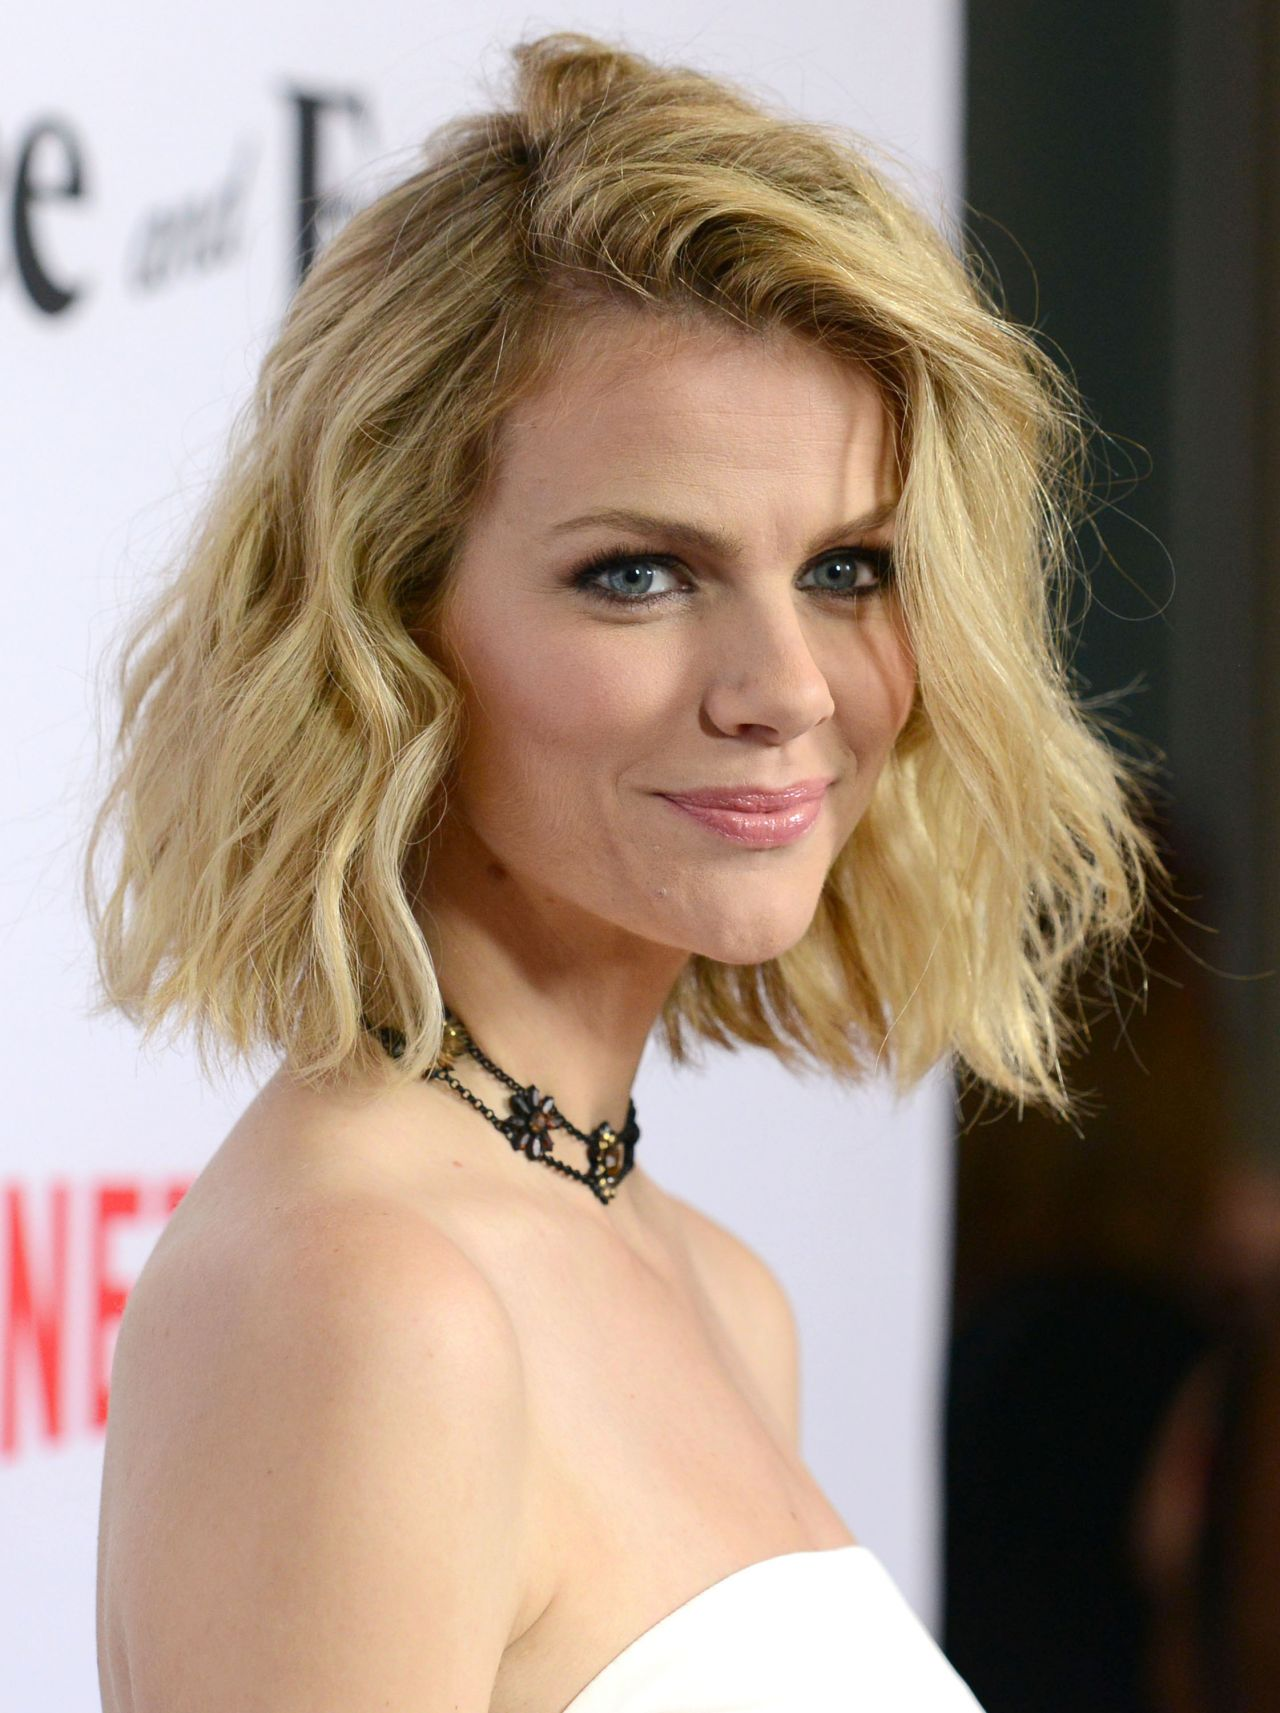 Brooklyn Decker - Grace and Frankie Premiere in Los Angeles Brooklyn Decker